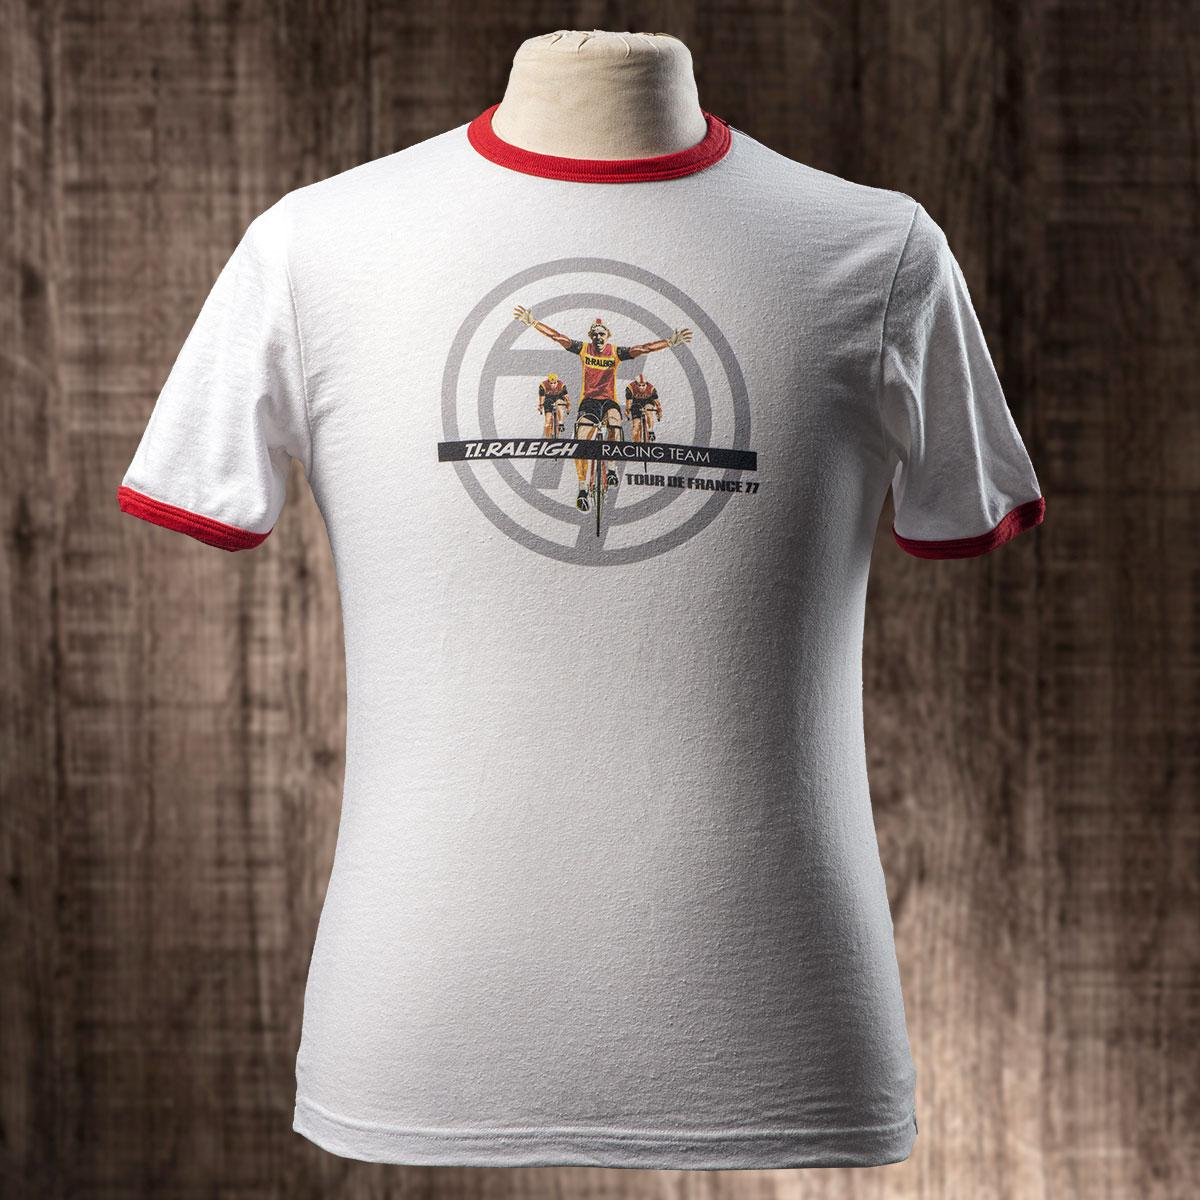 Afbeelding Magliamo T-Shirt - Raleigh Team